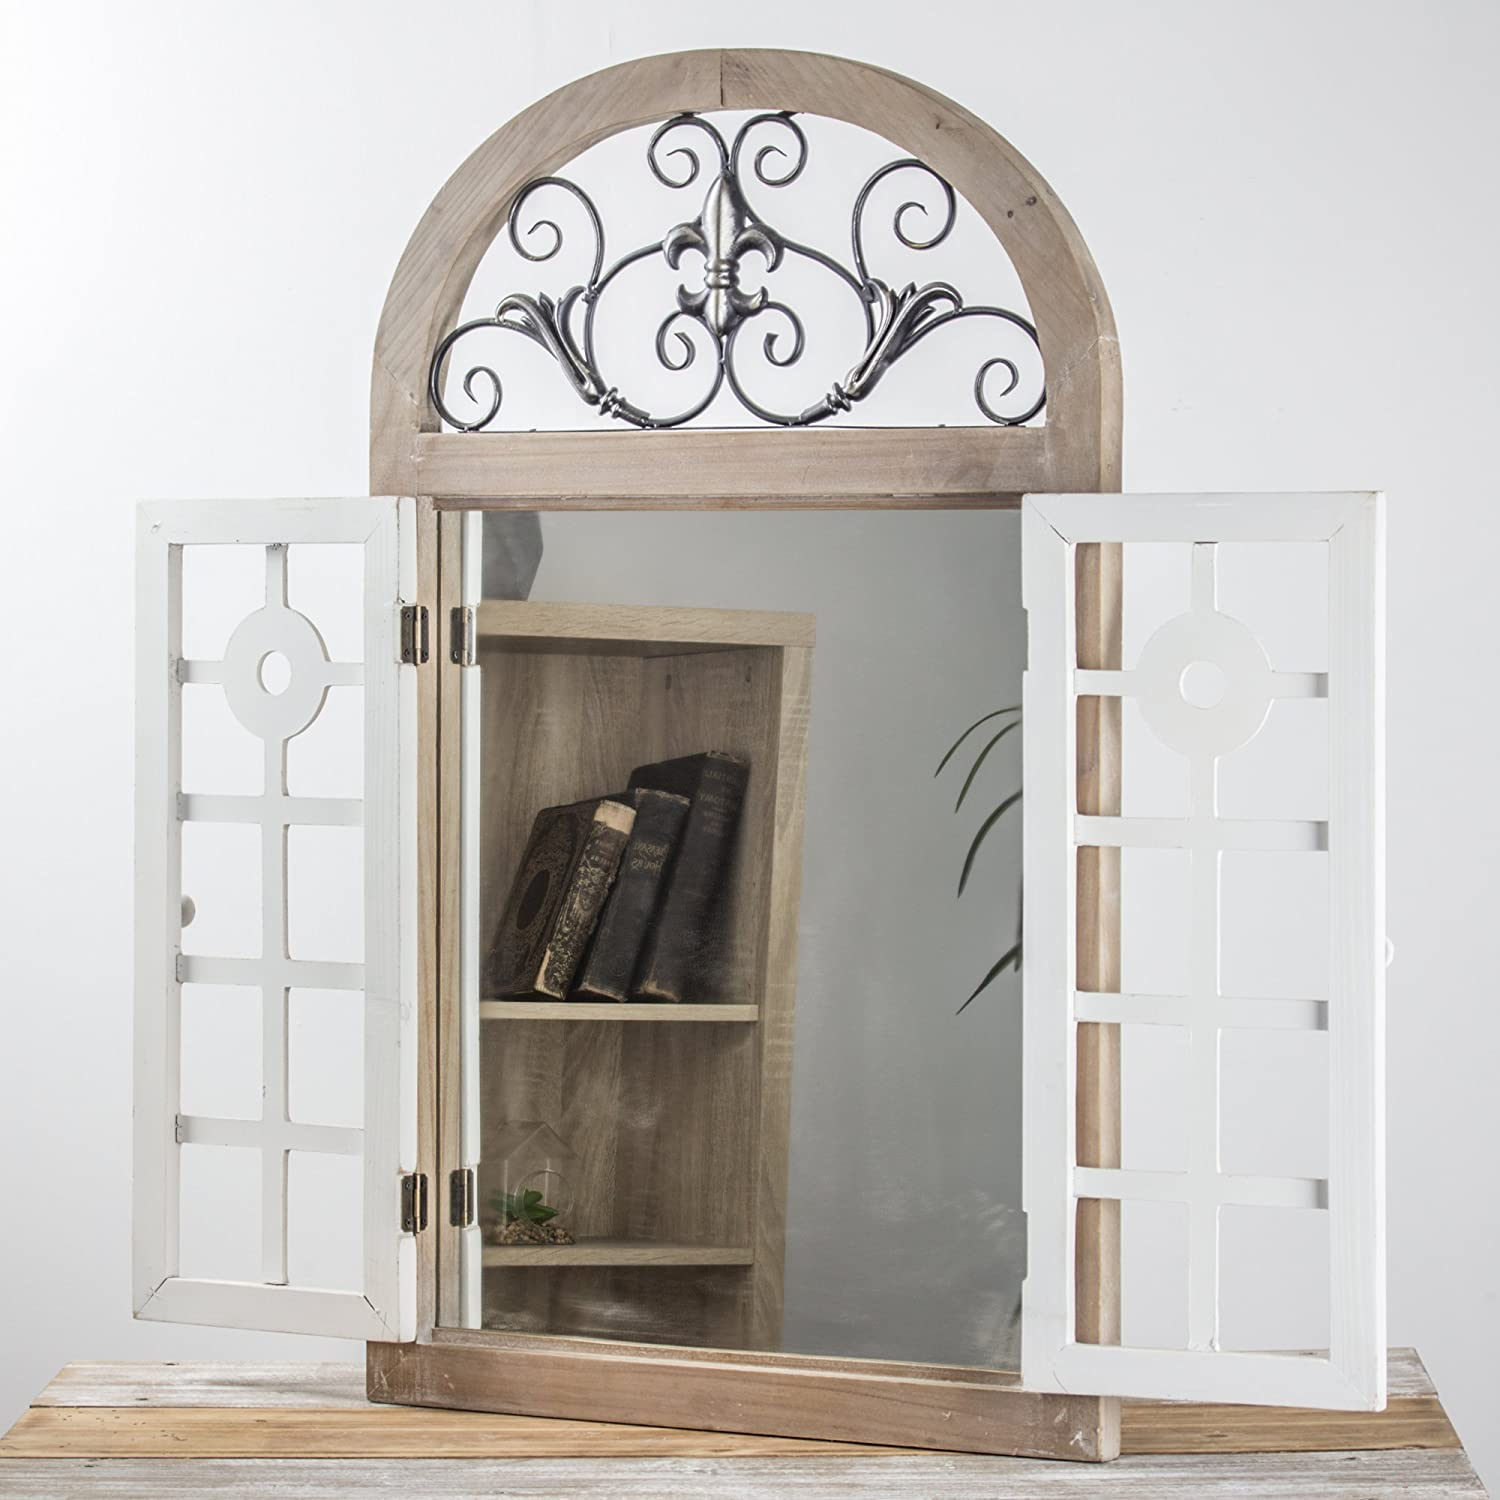 American Art Decor Rustic Farmhouse Cathedral Arch Window Shutter Wall Vanity Accent Mirror 34.25 H x 21.25 L x 1.75 D